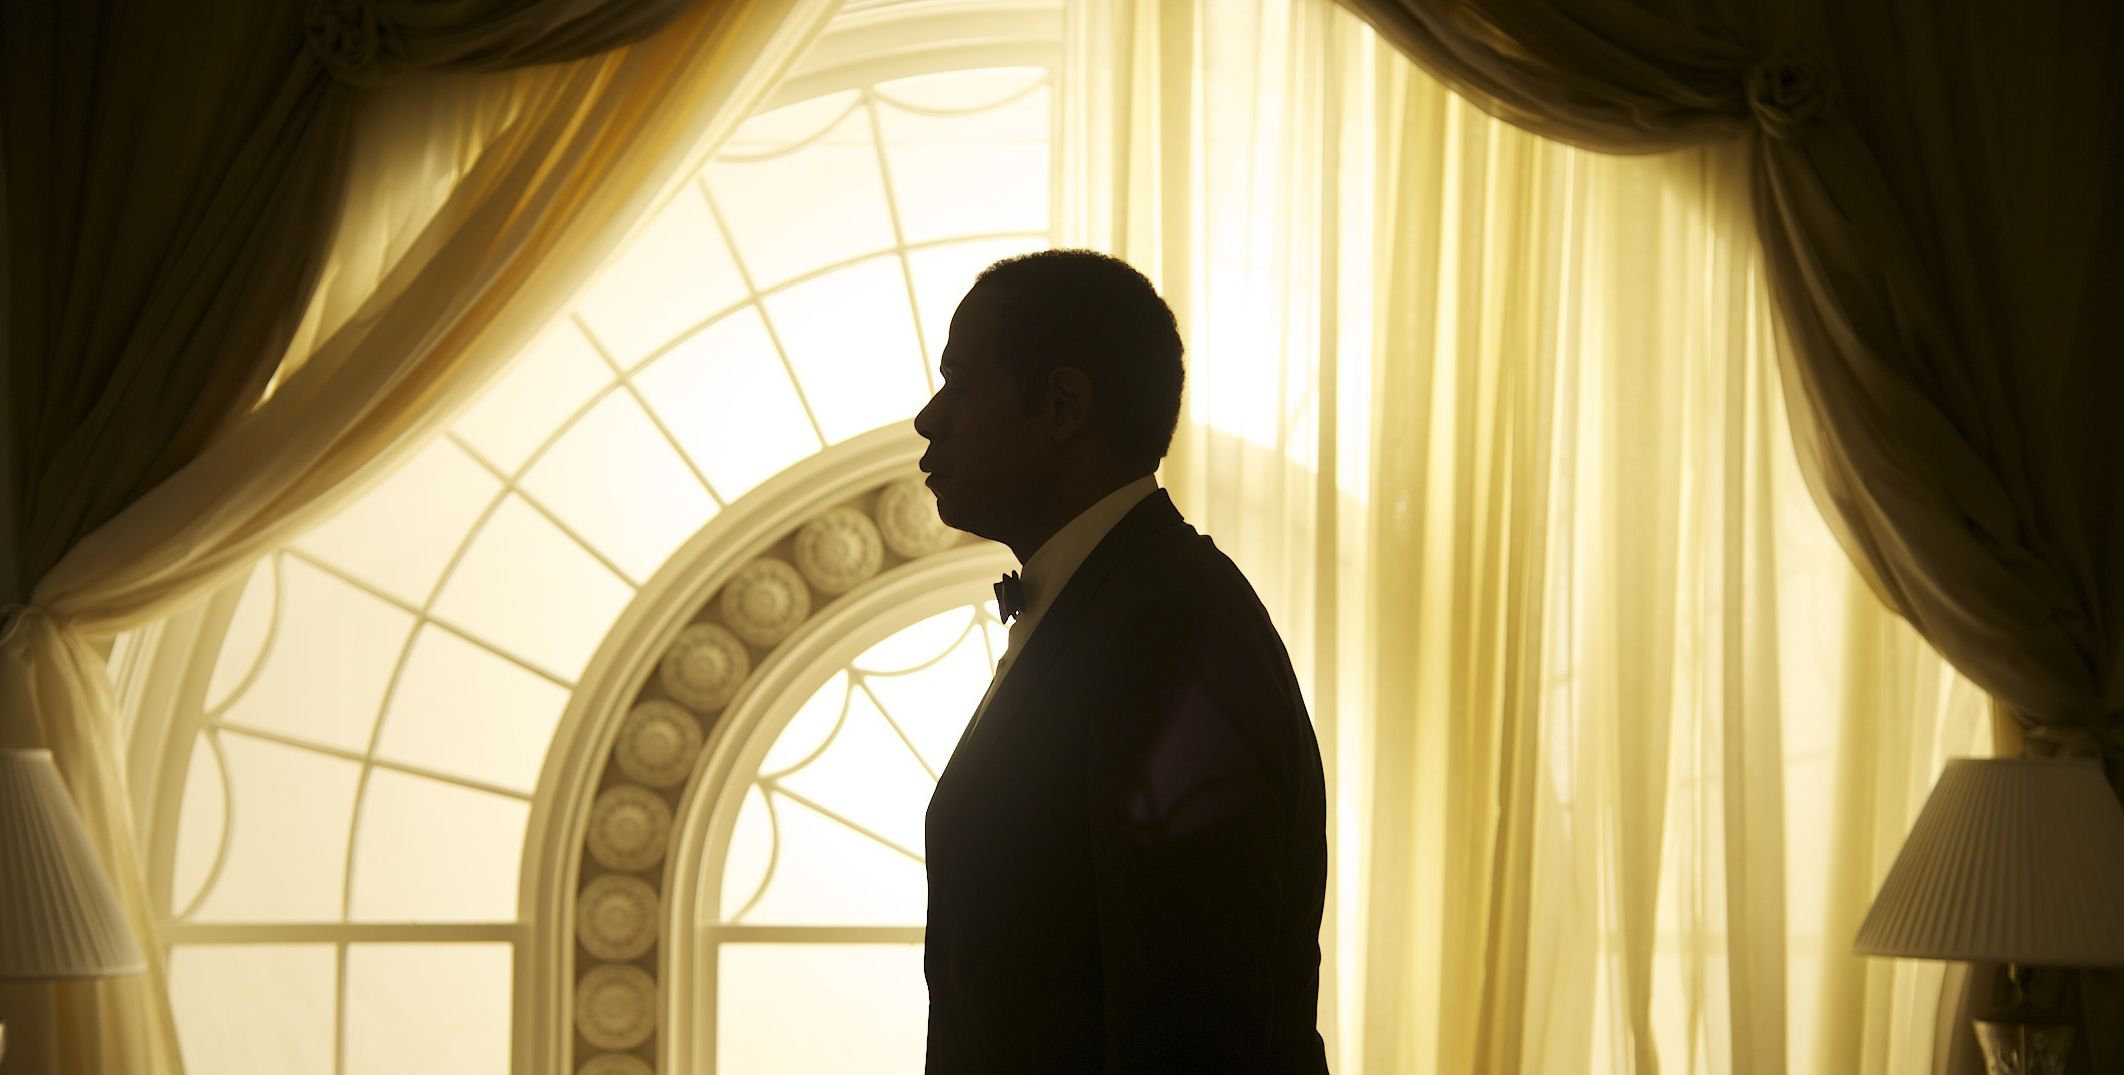 Interview: Forest Whitaker on The Butler, Father-Son Stories, and More